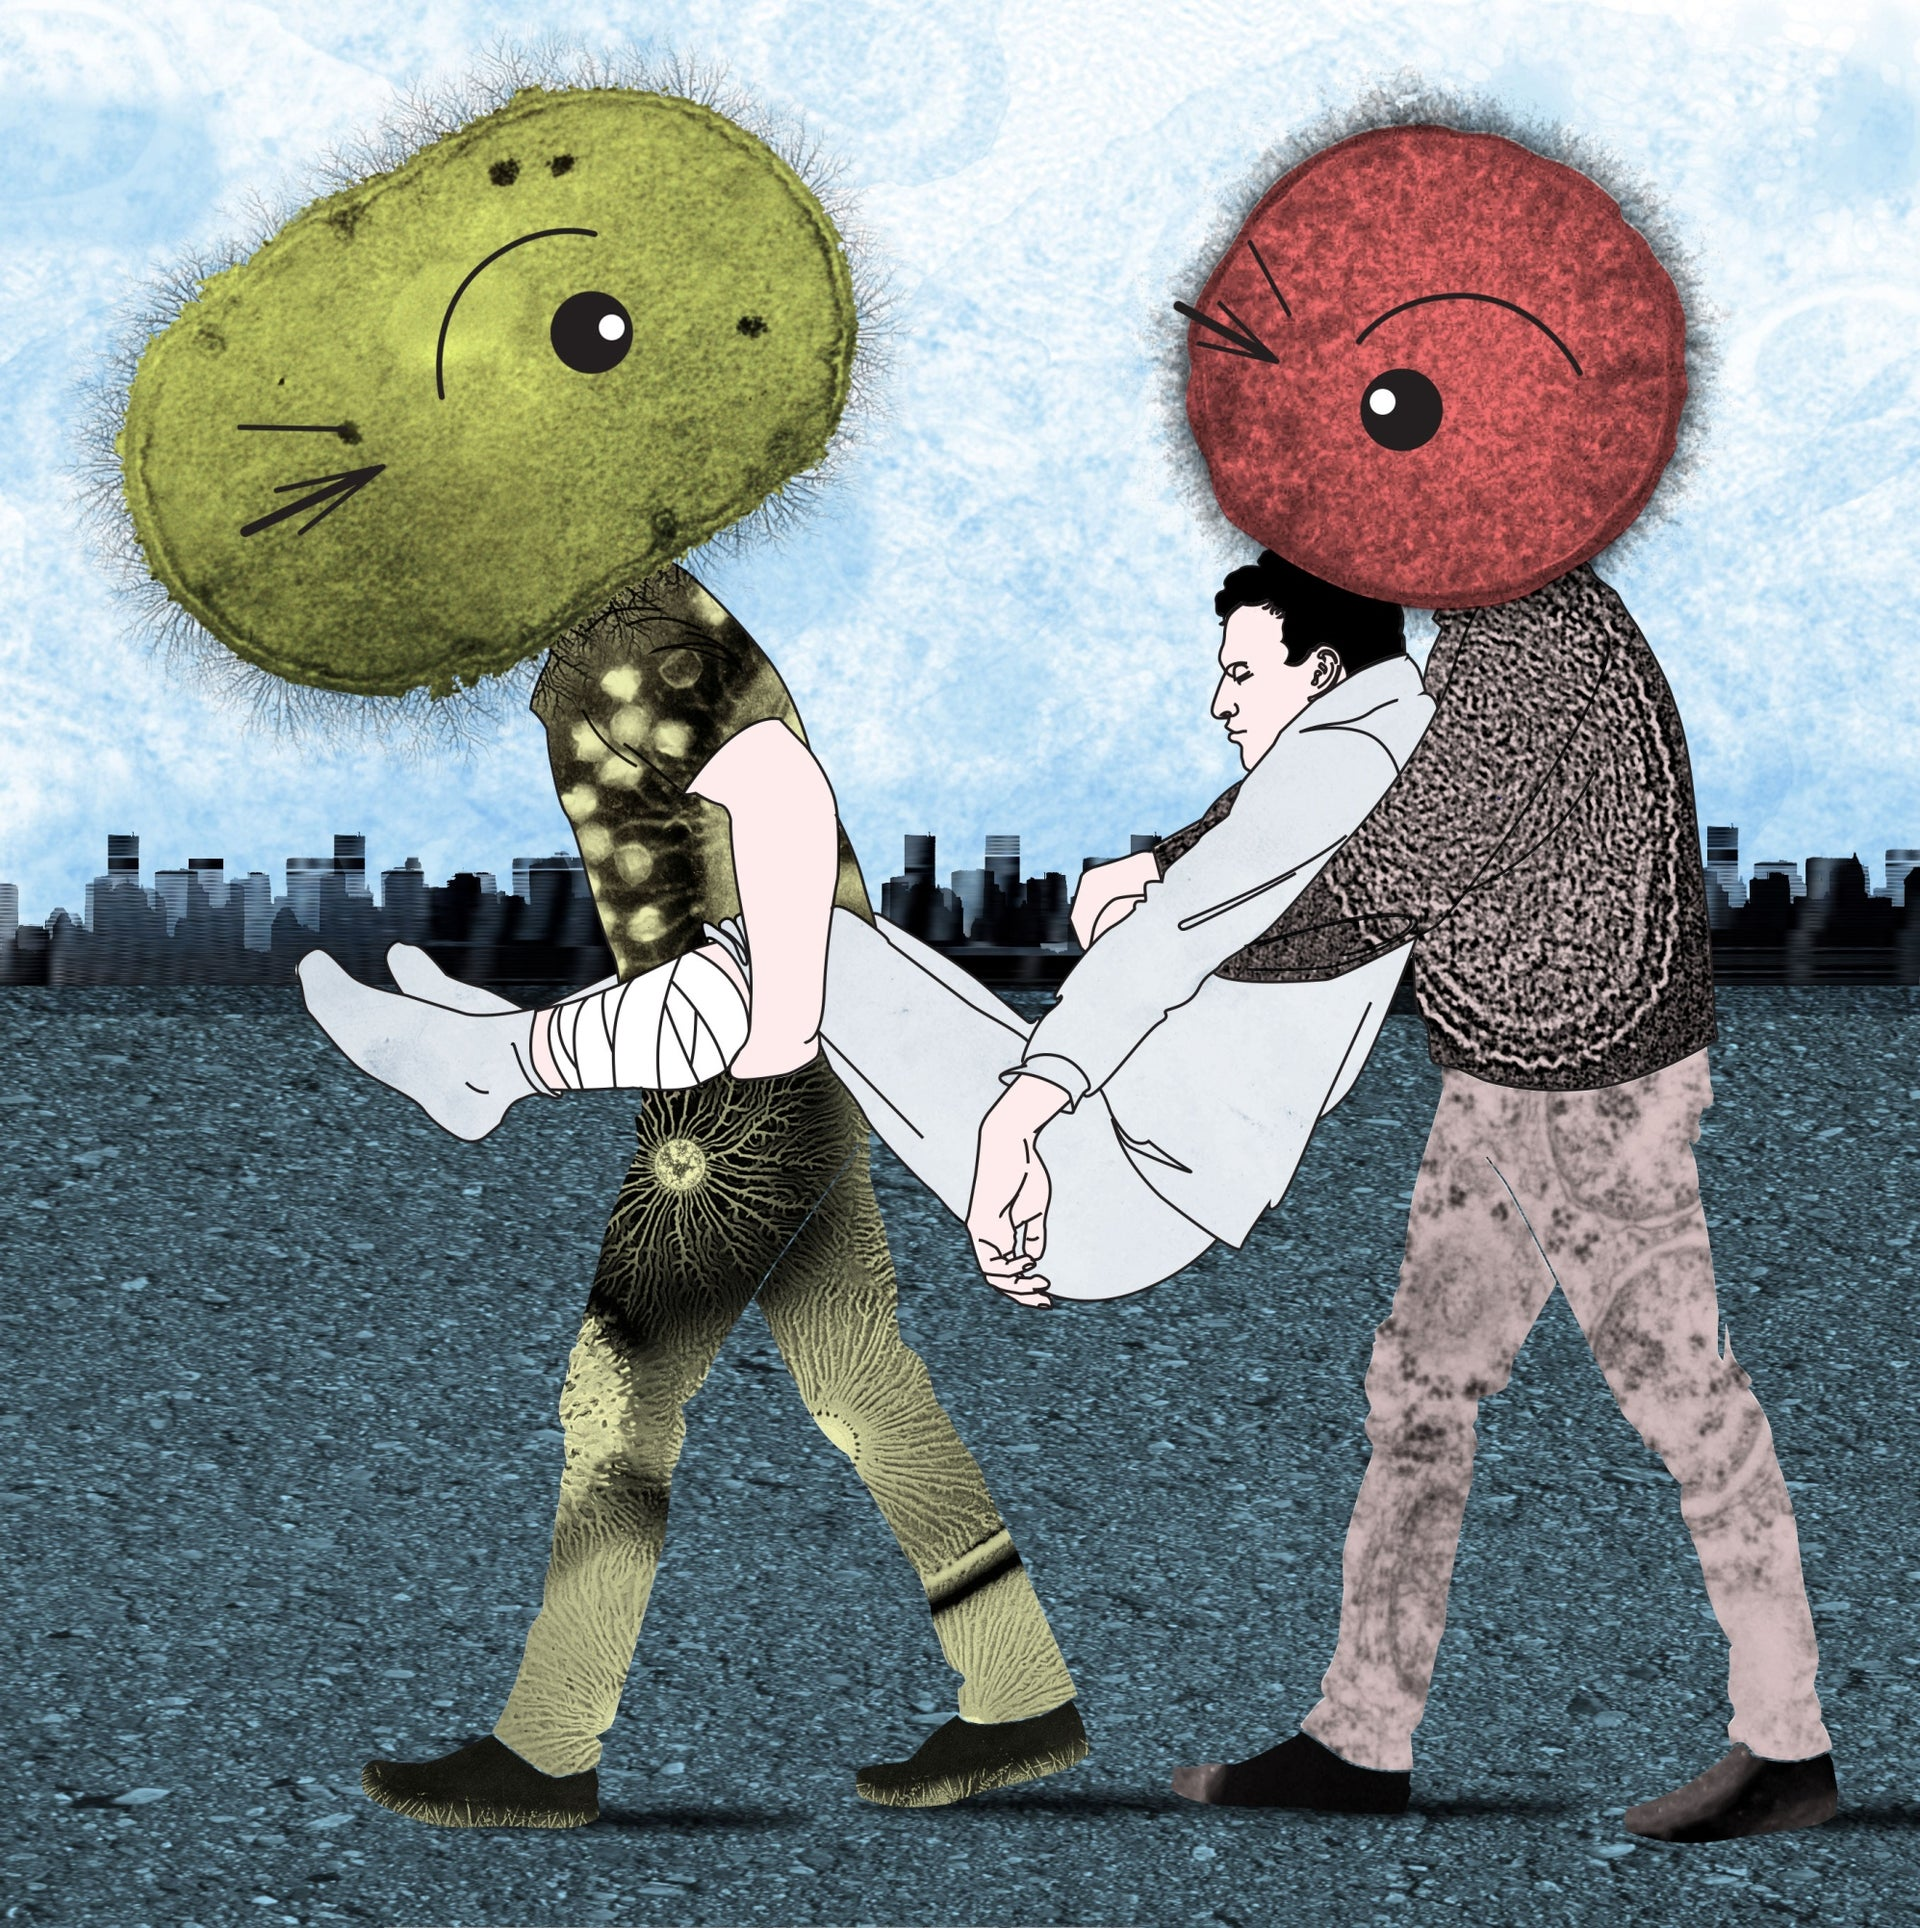 Illustration by Yael Bogen: Figures with microbe-shaped heads carry a man.